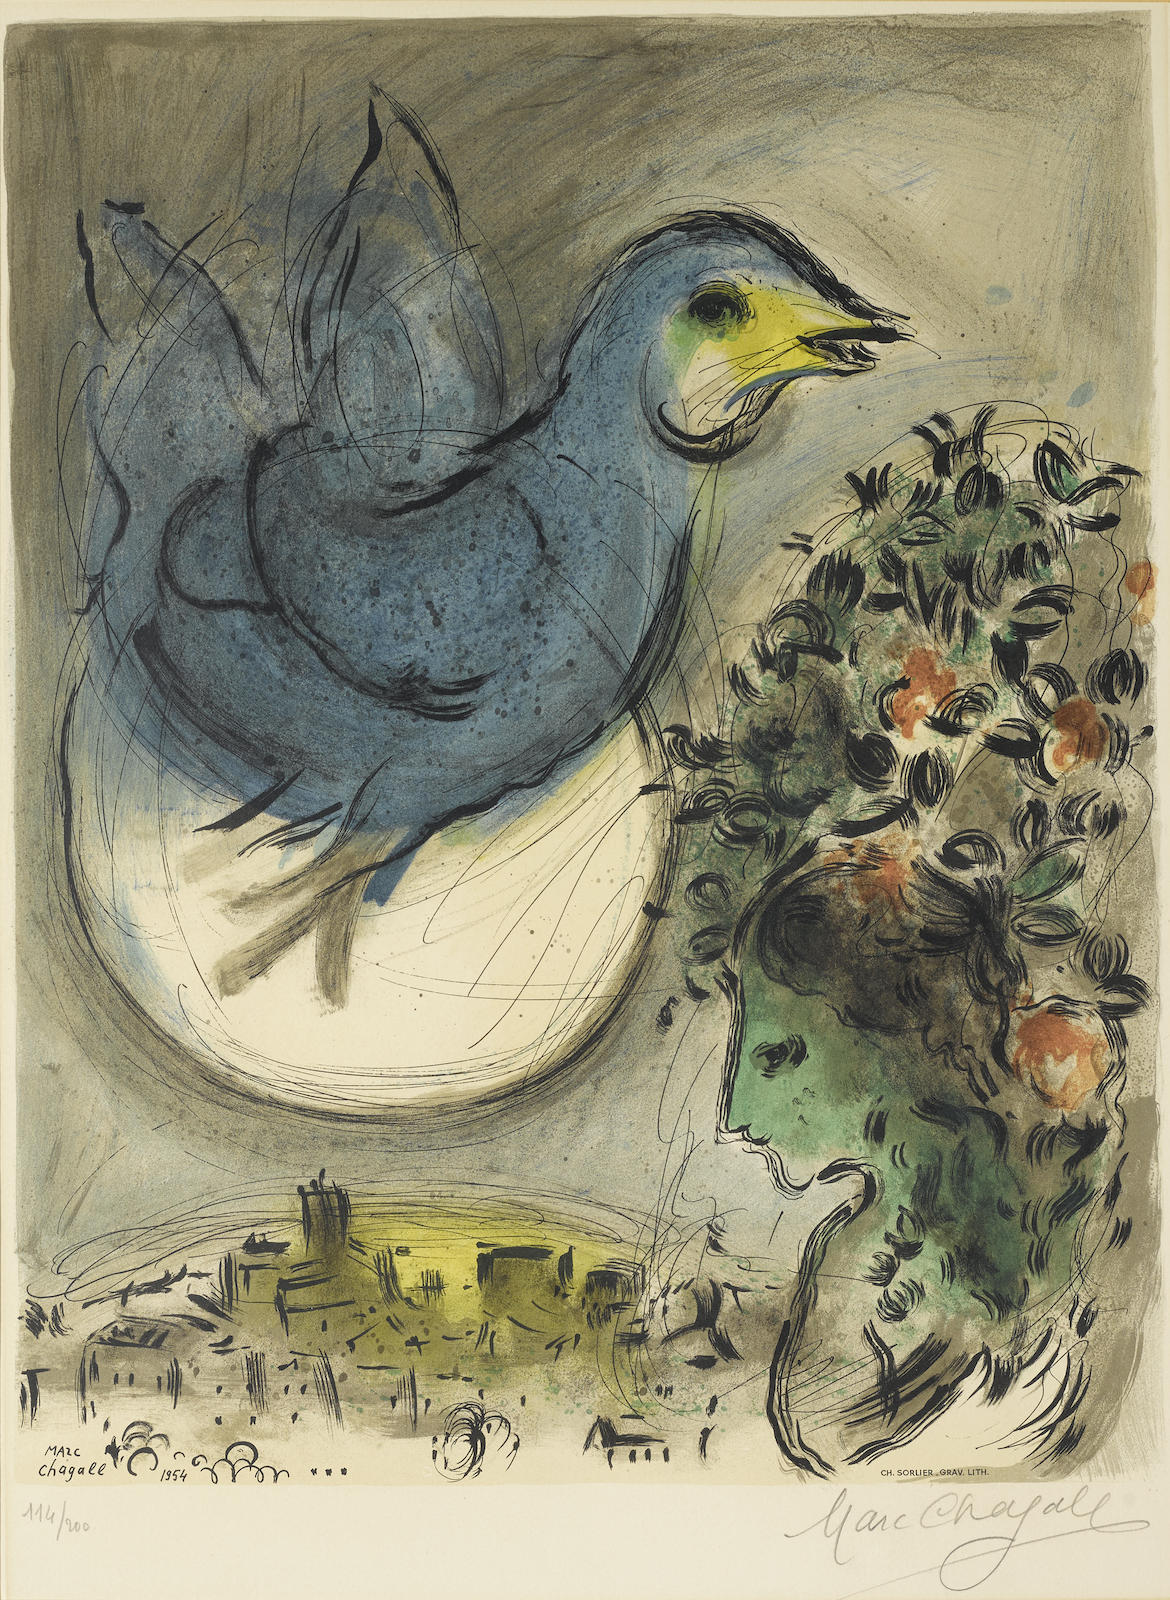 Marc Chagall-After Marc Chagall - The Blue Bird (M. Cs. 41)-1968